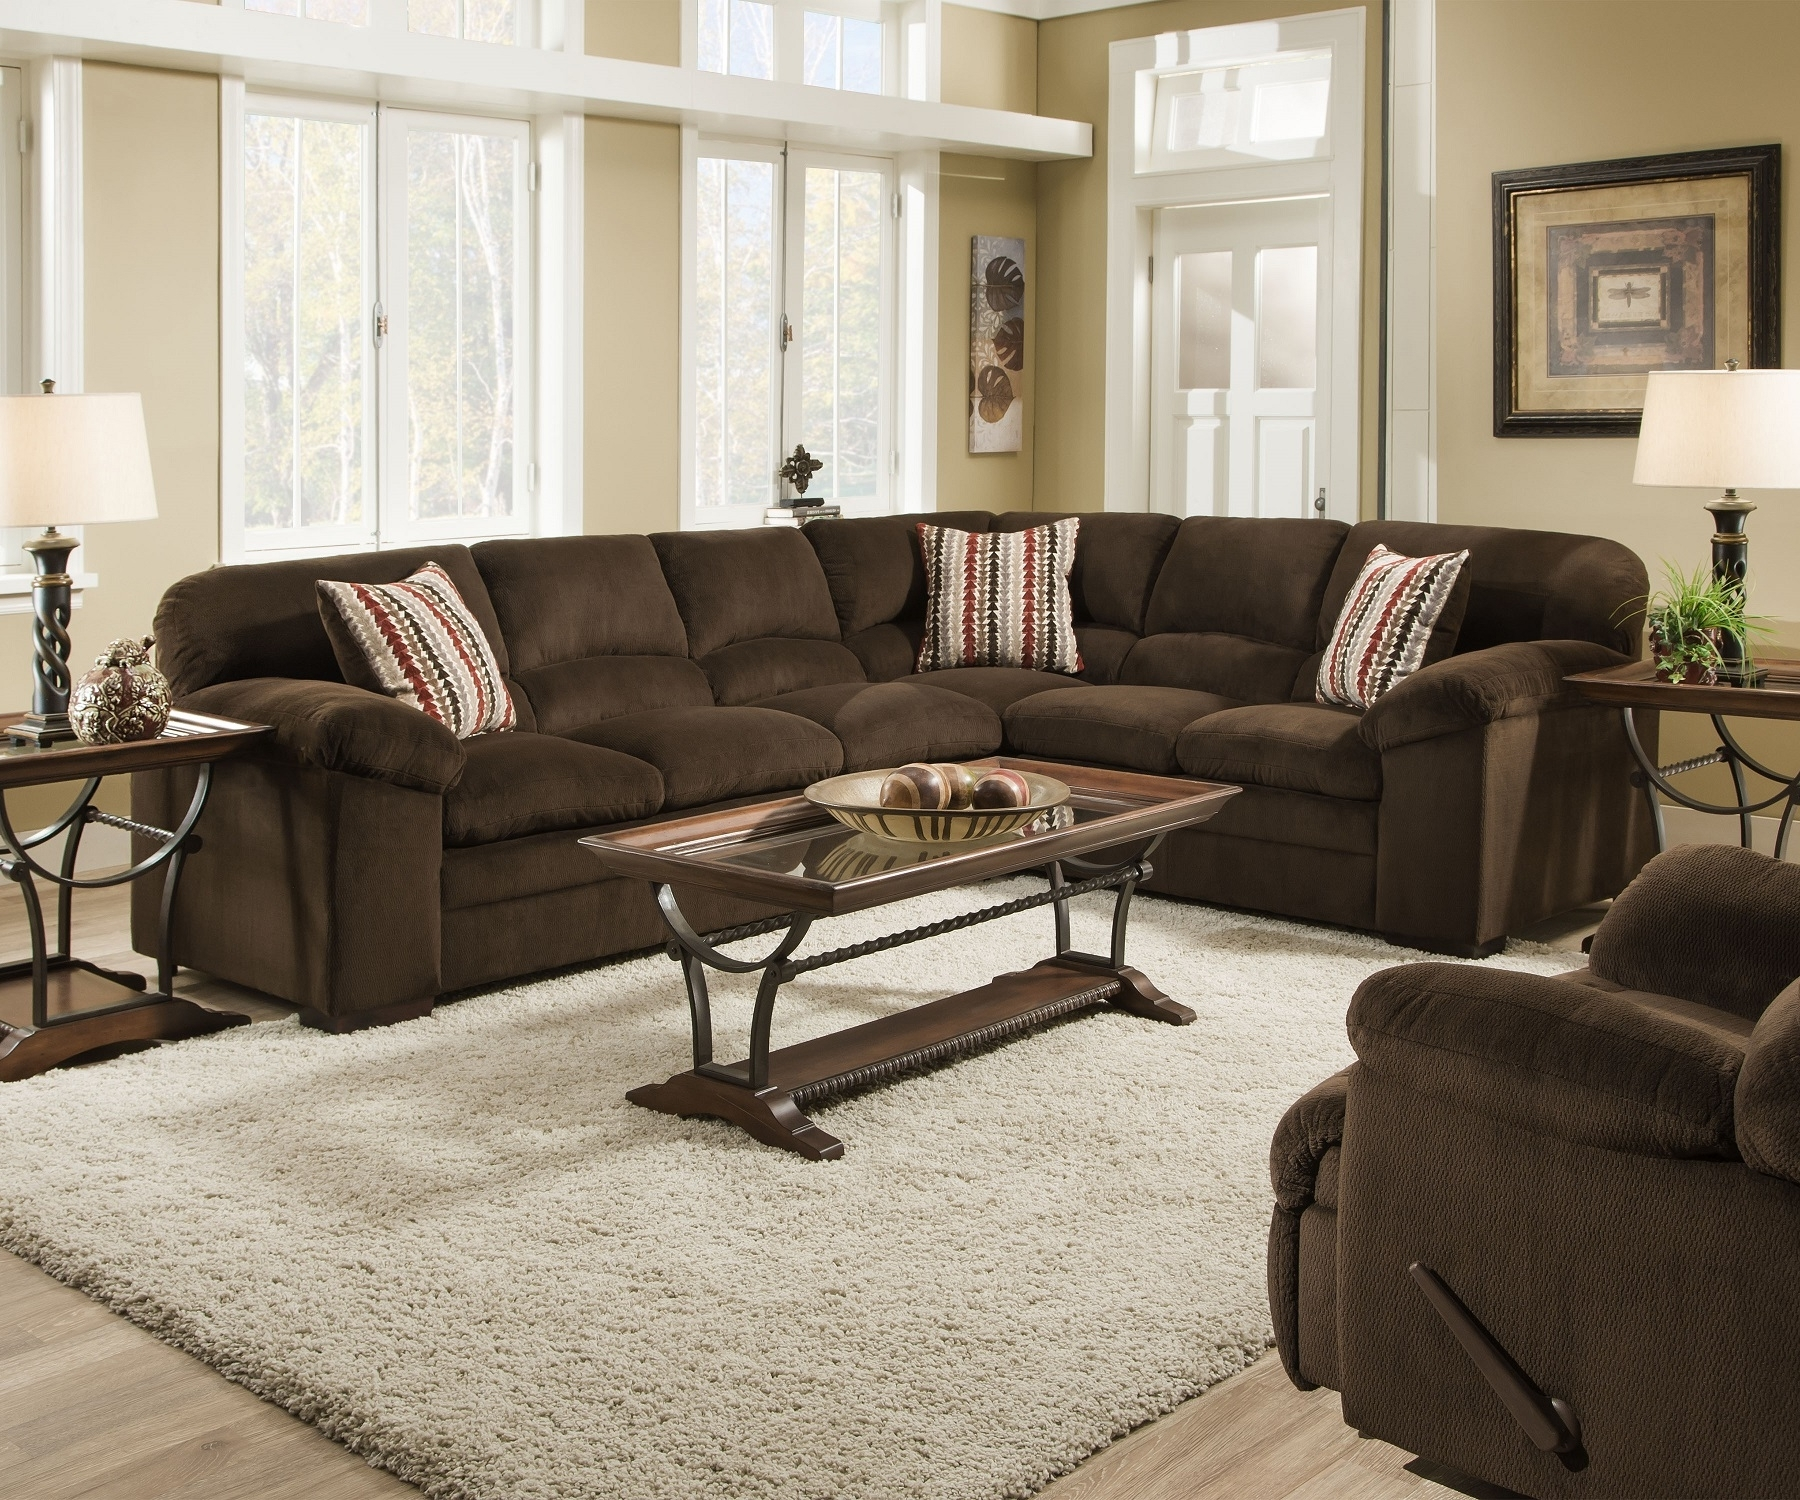 Well Known Simmons Dover 8043 Chocolate Ultra Plush Soft Seating Made In The Usa With Regard To Chocolate Sectional Sofas (View 6 of 20)